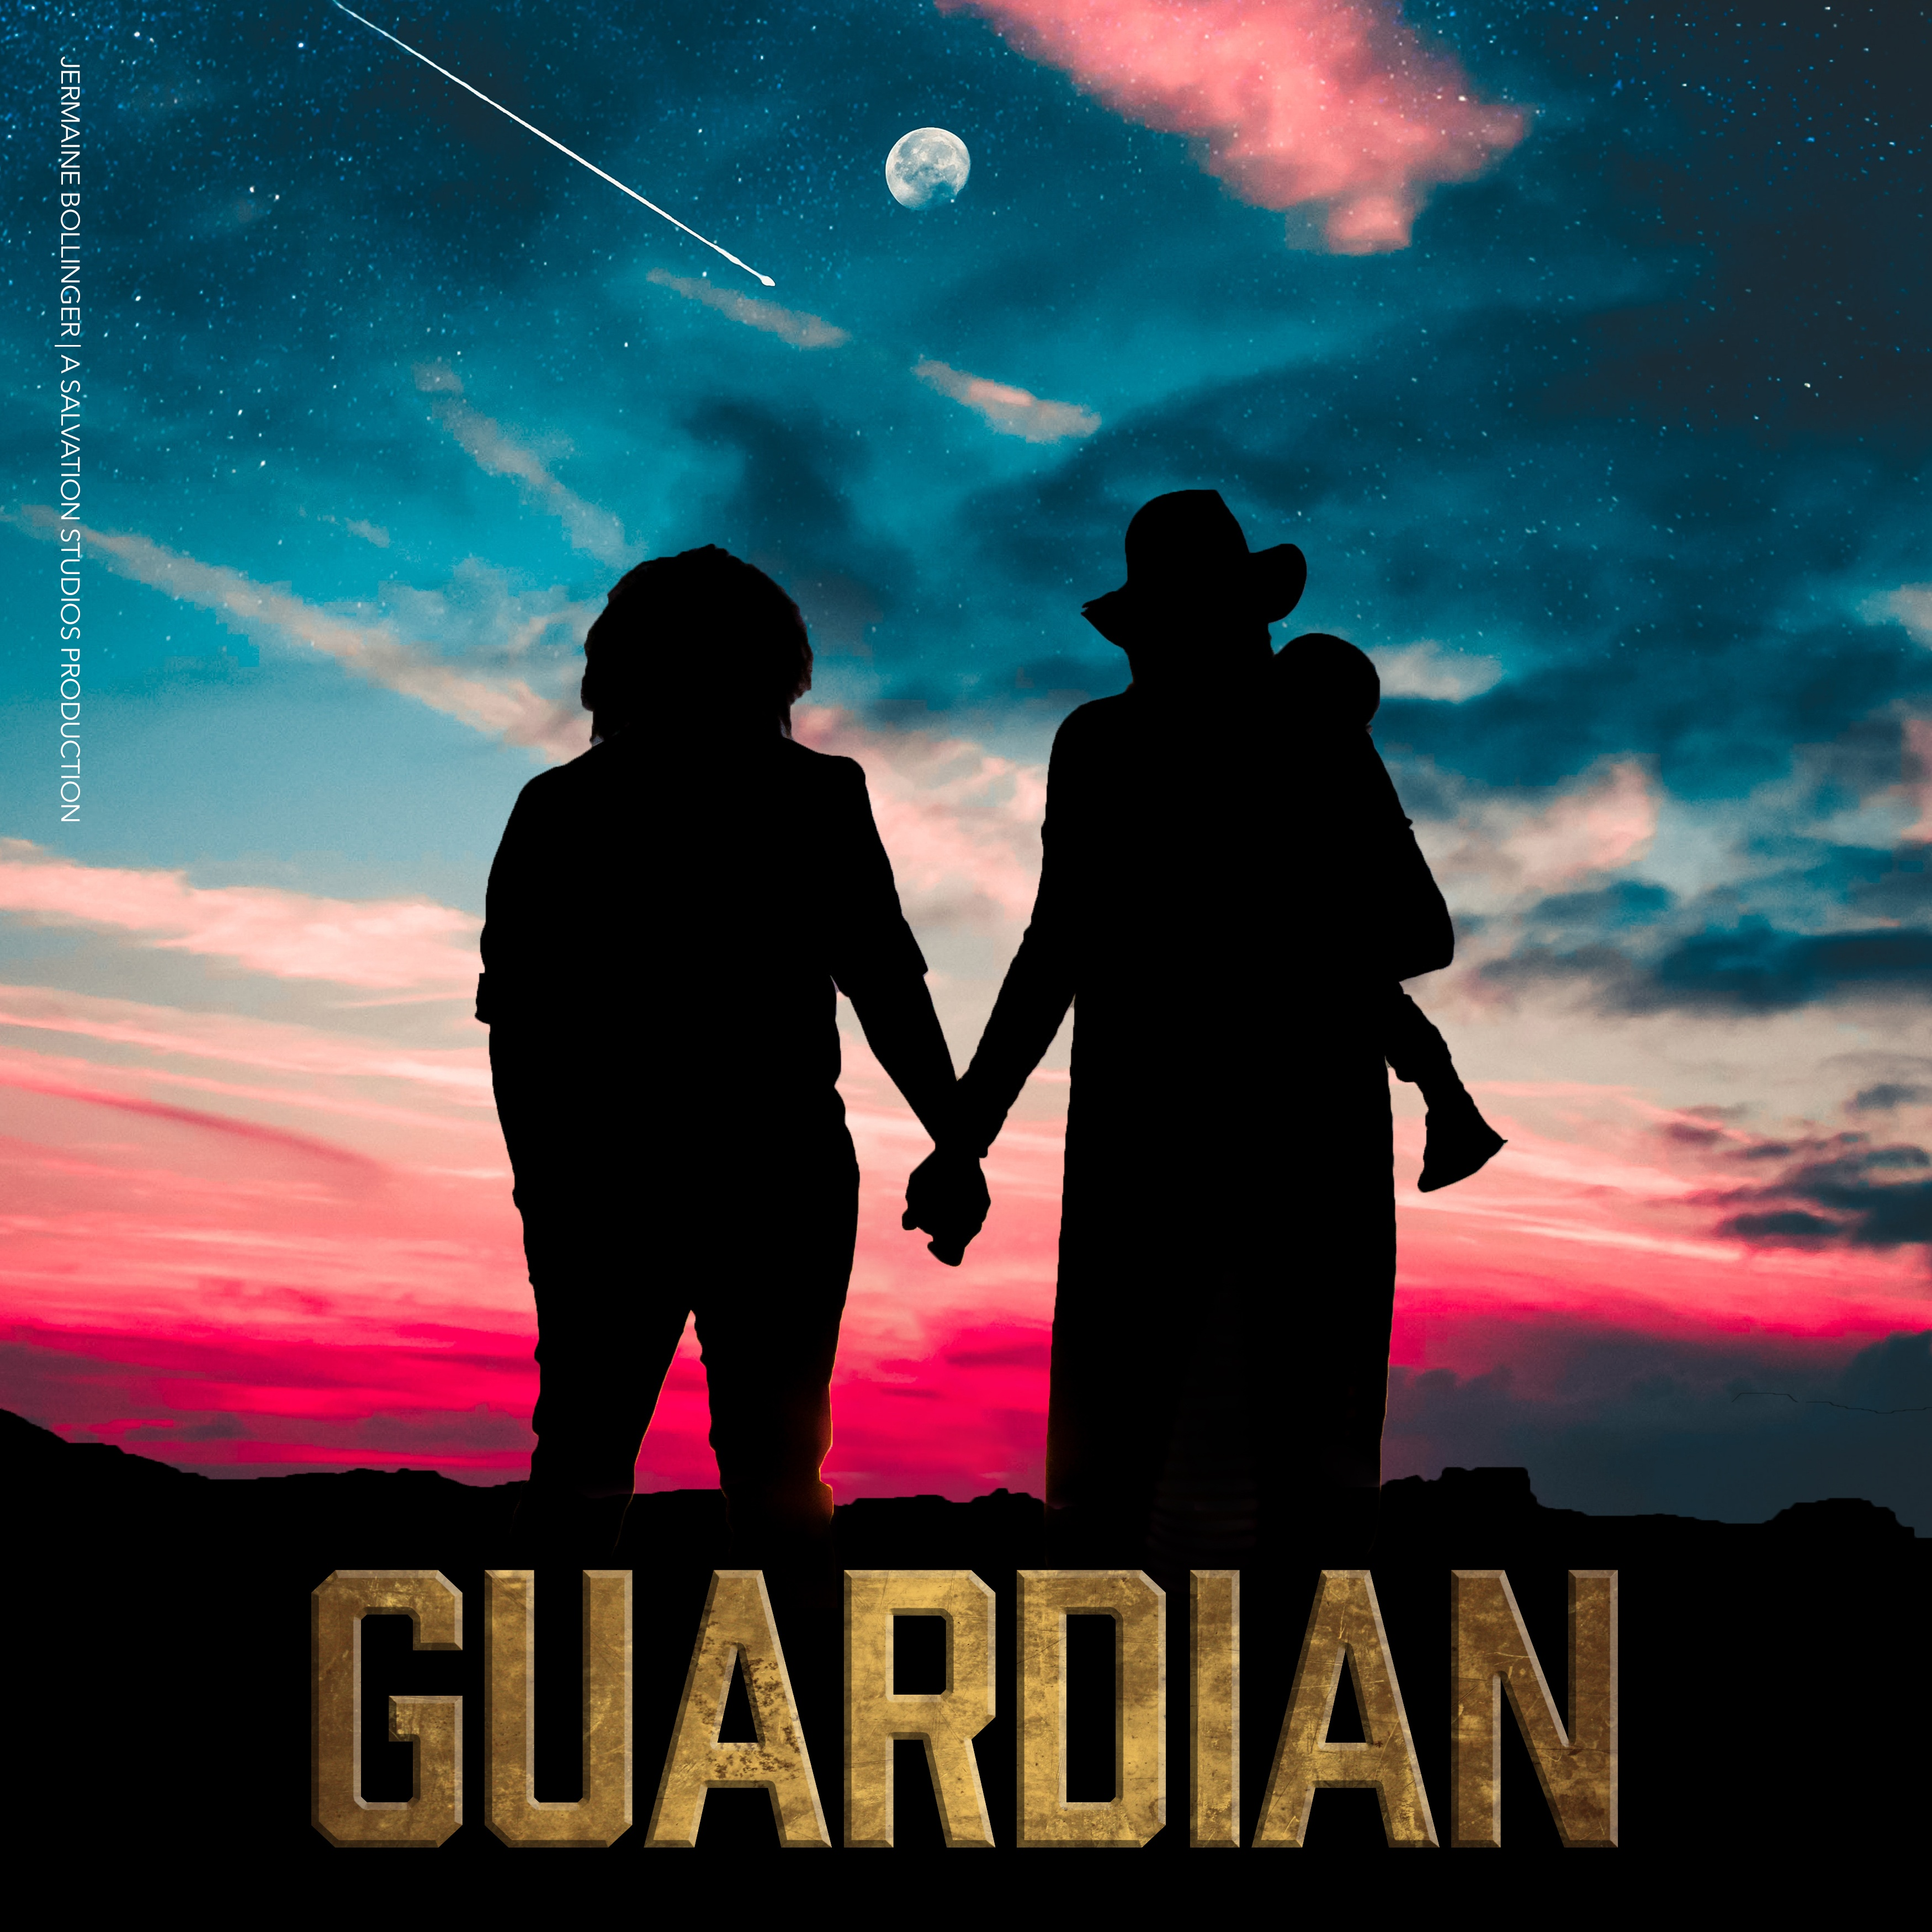 JERMAINE BOLLINGER RELEASES NEW ALBUM TITLED 'GUARDIAN'